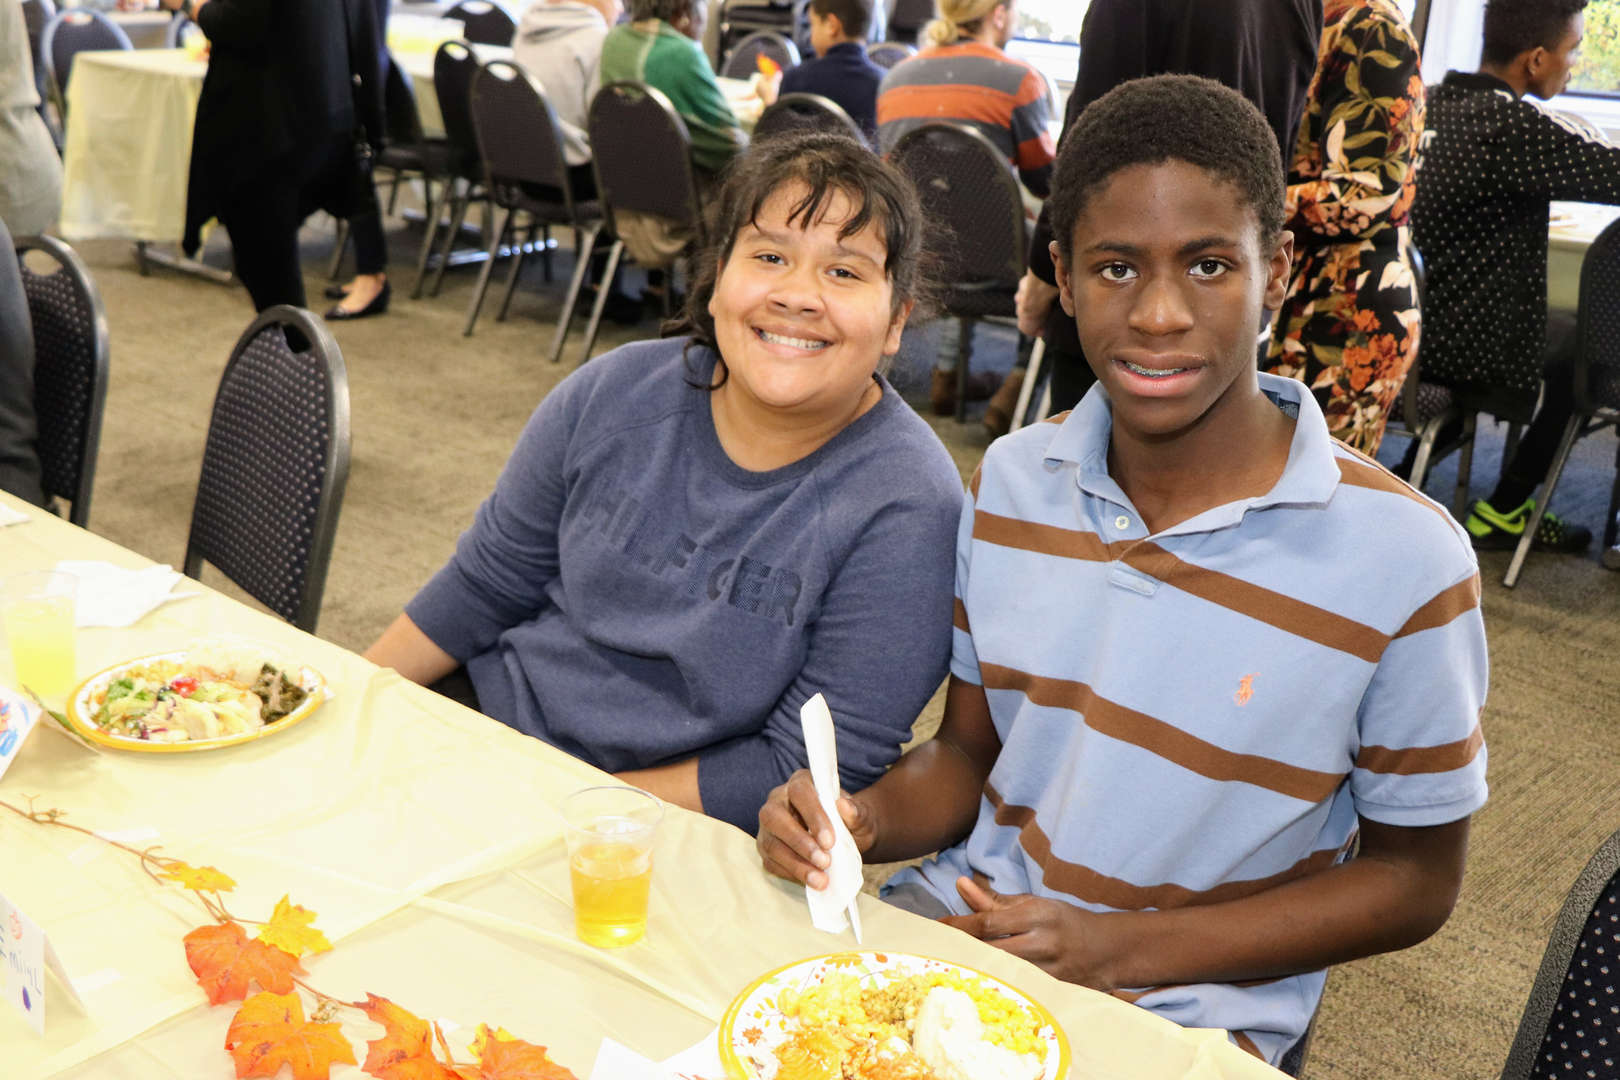 Two students smile during Thanksgiving luncheon